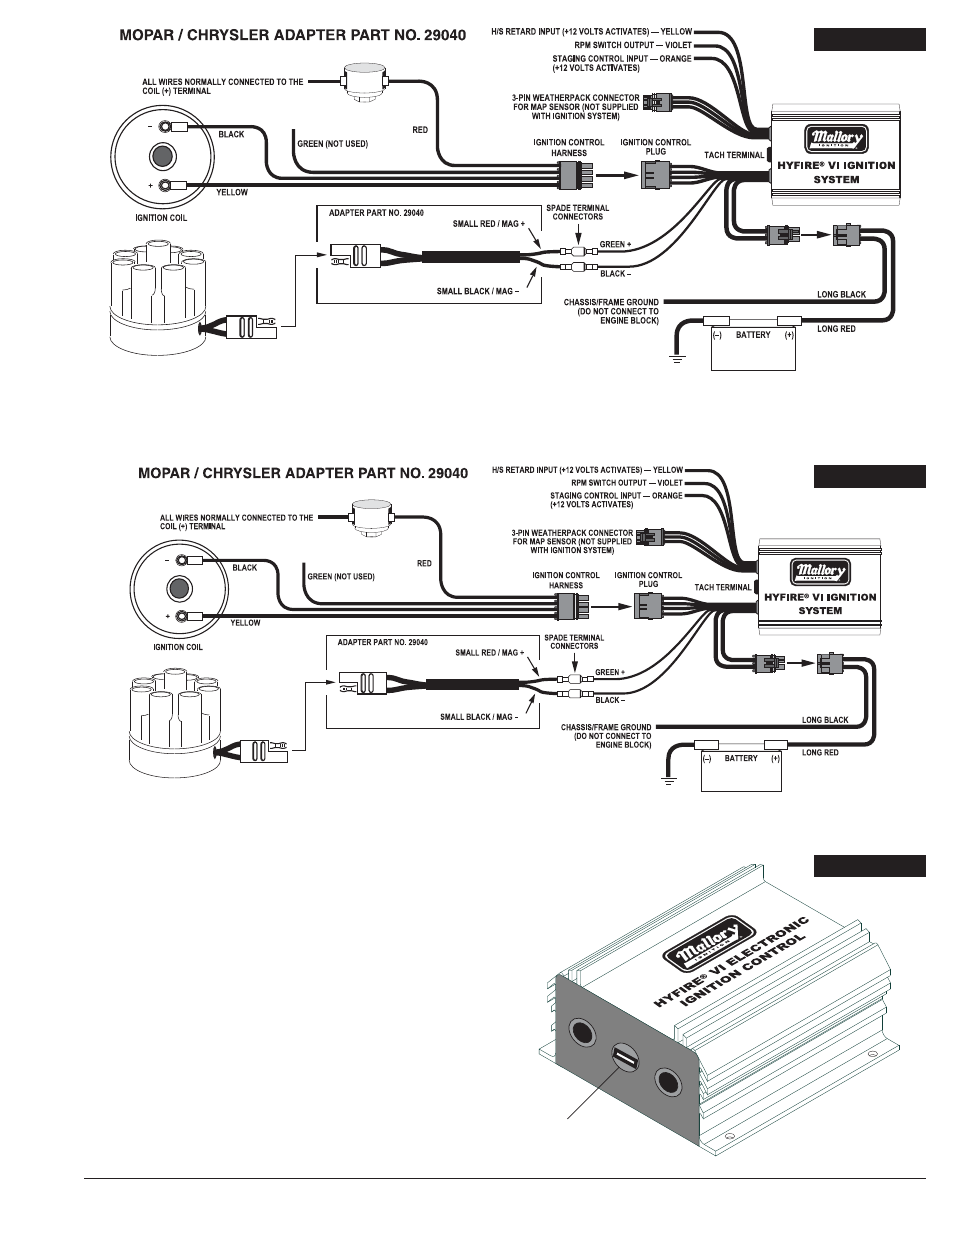 Mallory Hyfire Wiring Diagram For Cj7    Wiring Diagrams Home on